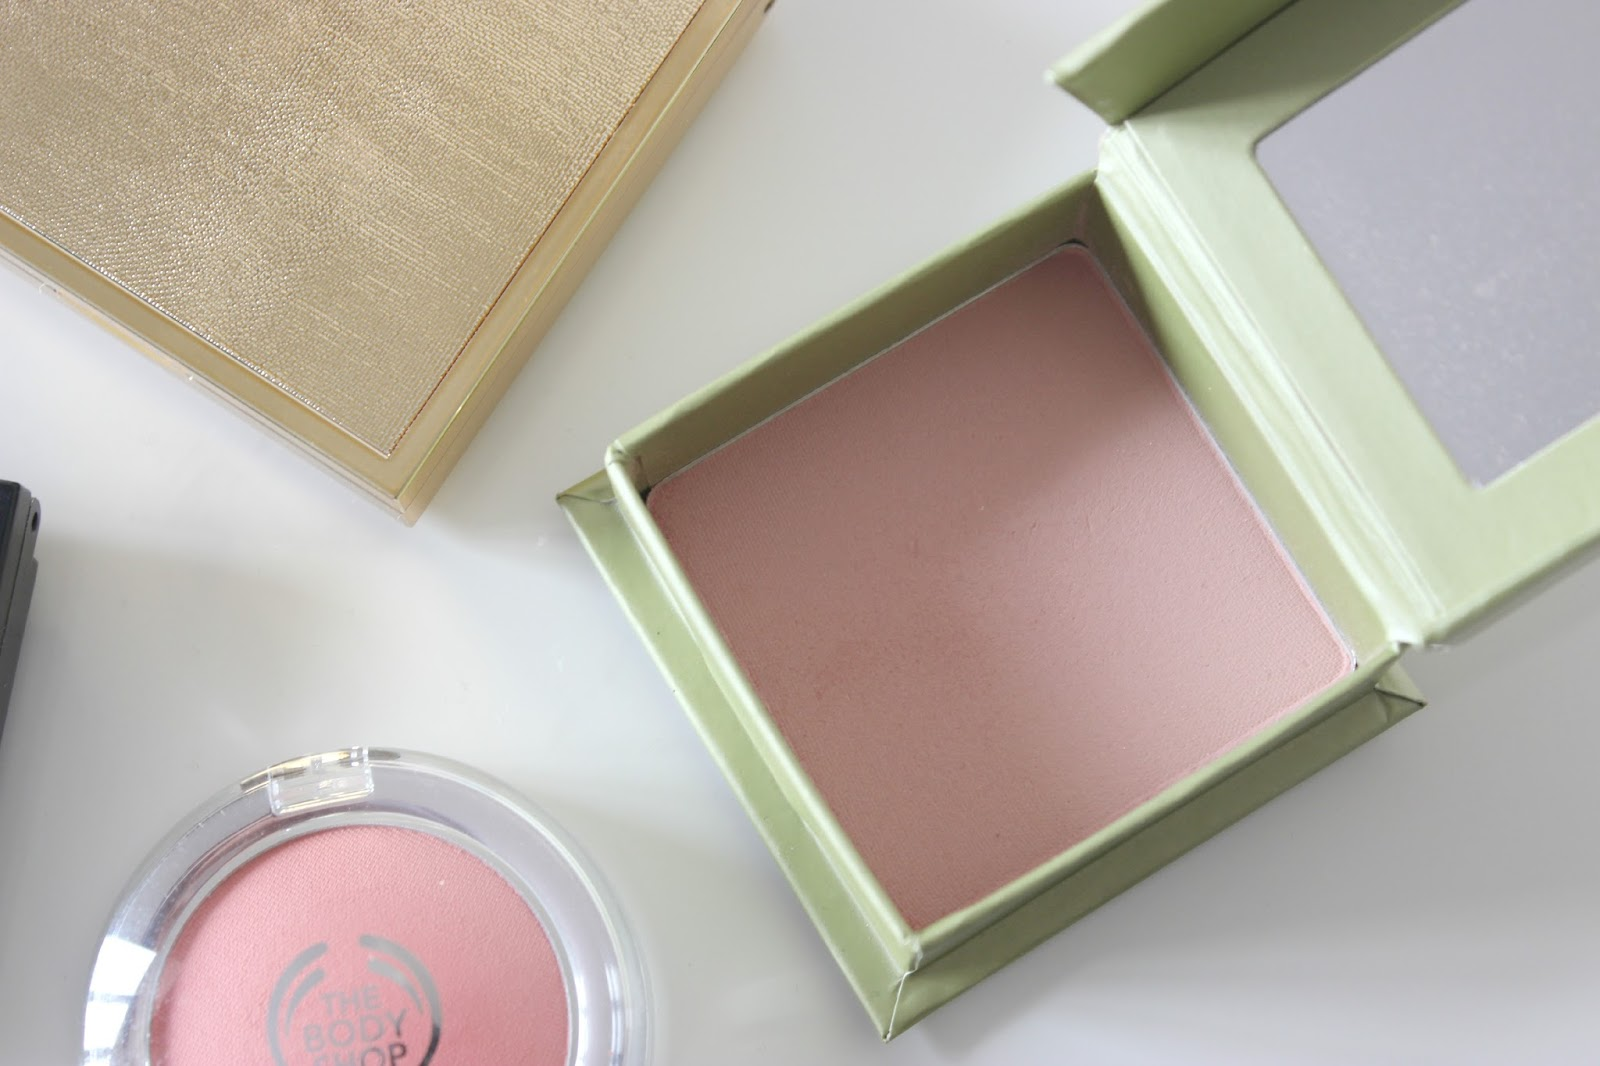 A picture of Benefit Dandelion Brightening Face Powder